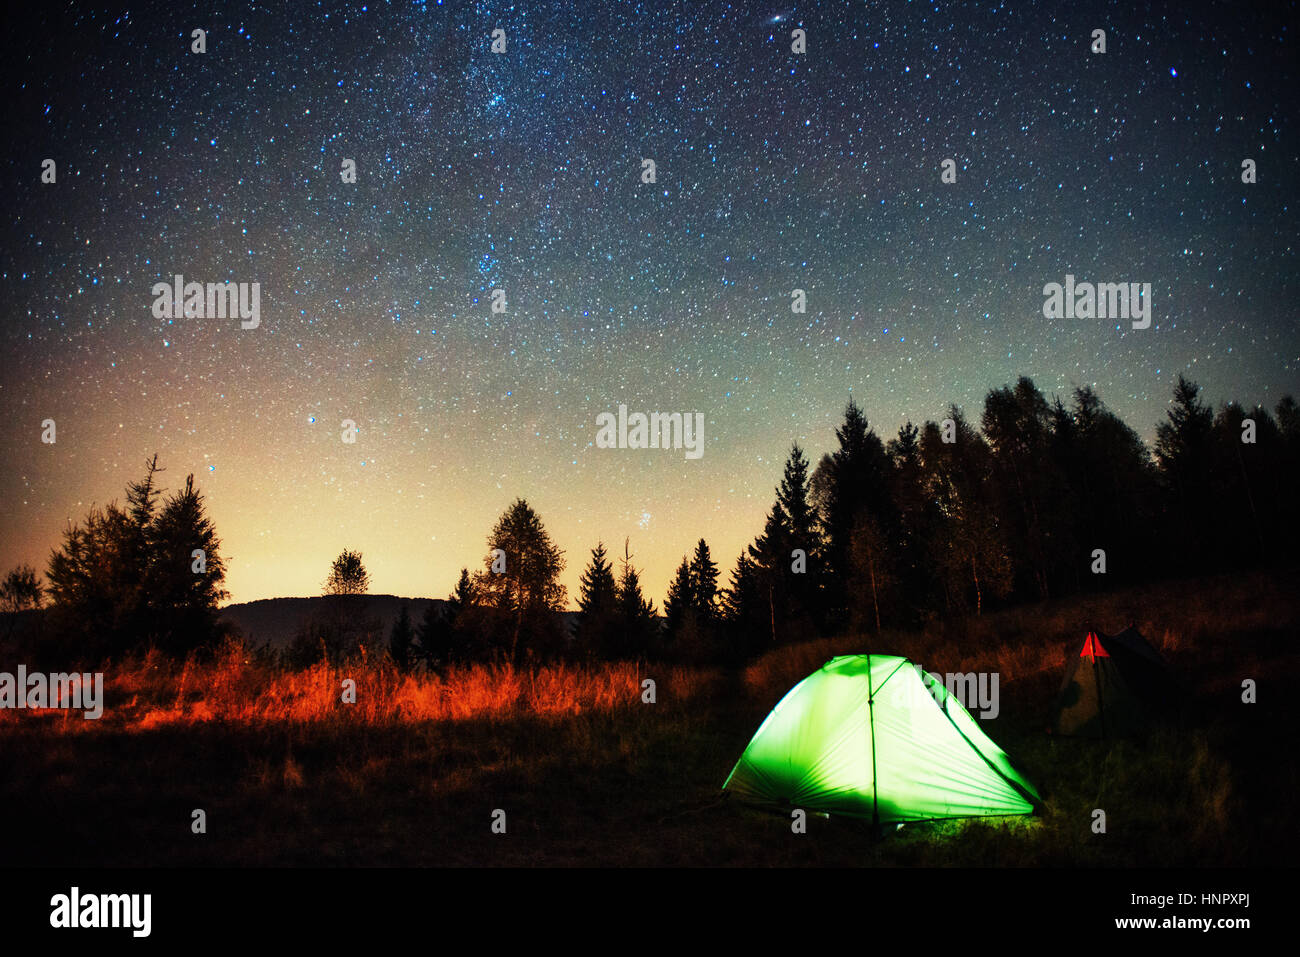 Camping under the stars  Green solo tent dark night sky